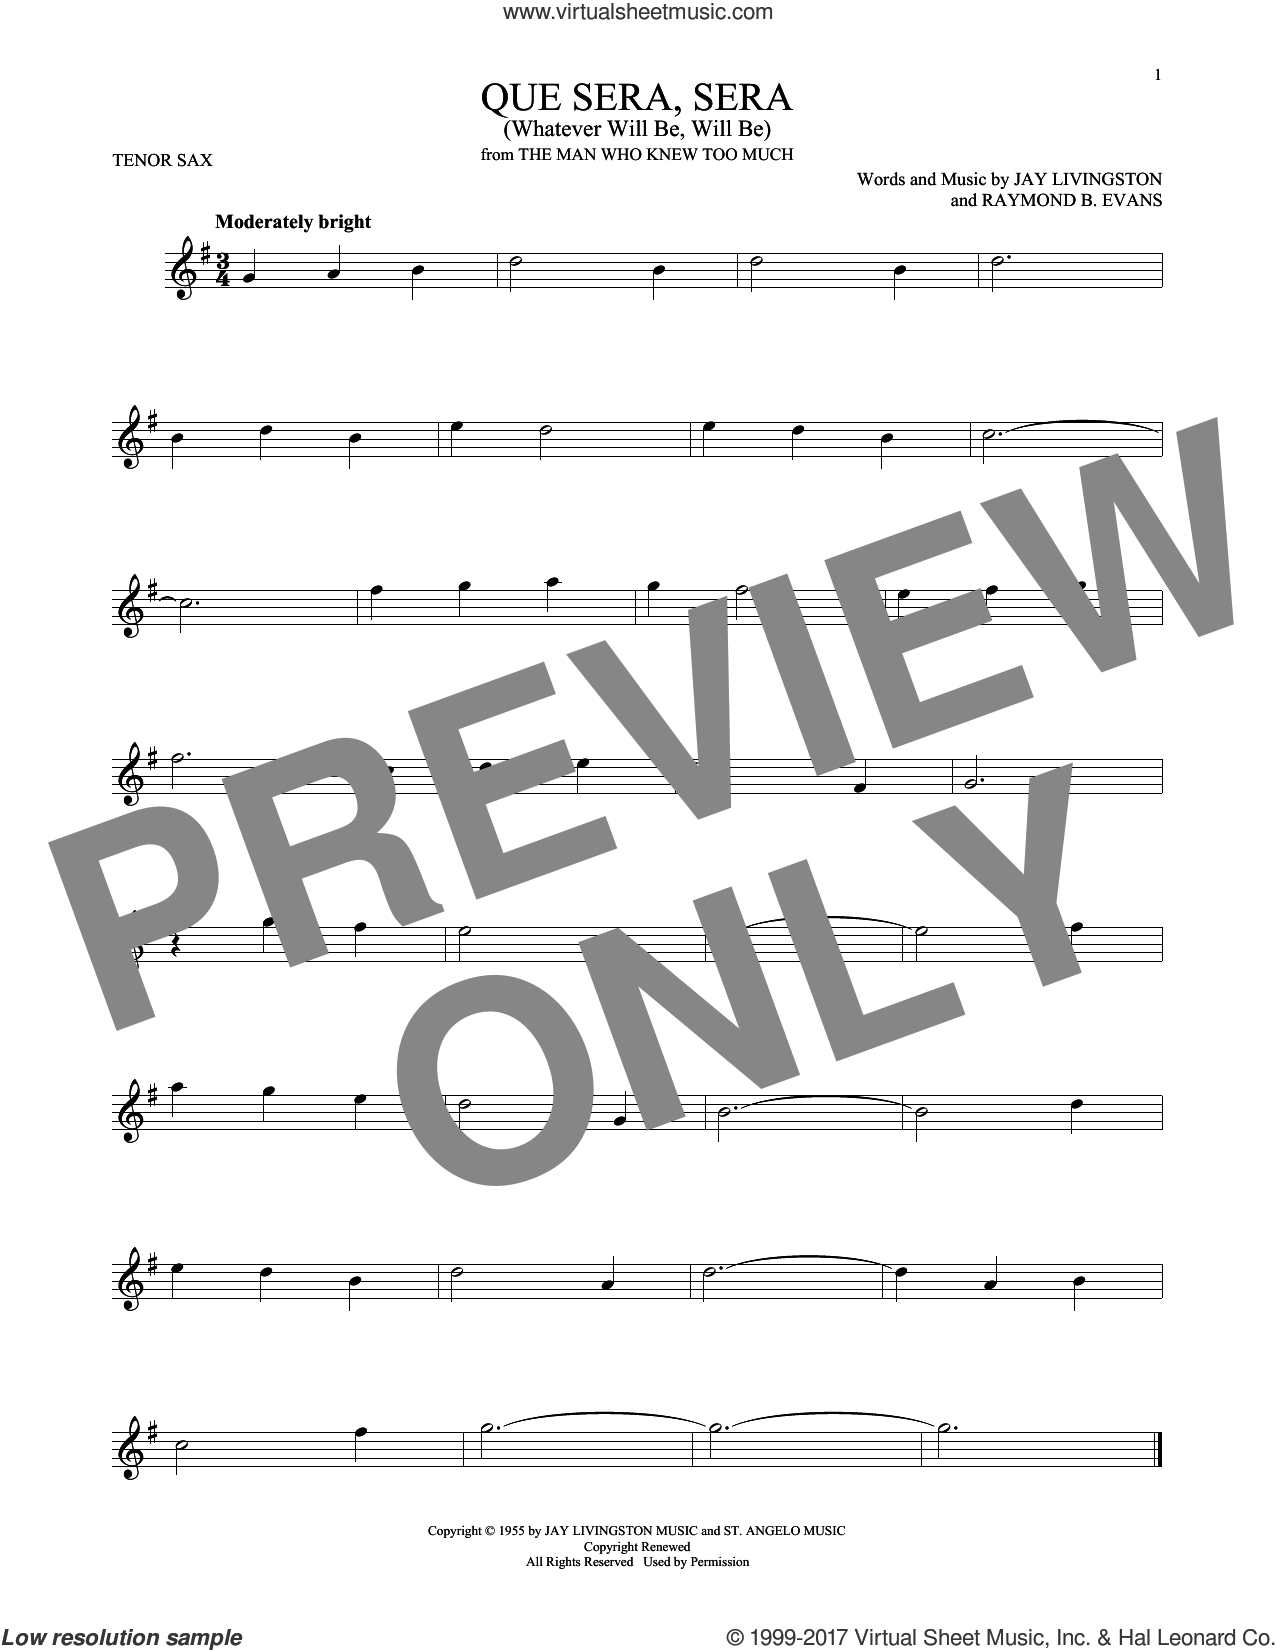 Que Sera, Sera (Whatever Will Be, Will Be) sheet music for tenor saxophone solo ( Sax) by Doris Day, Jay Livingston and Raymond B. Evans, intermediate tenor saxophone ( Sax)